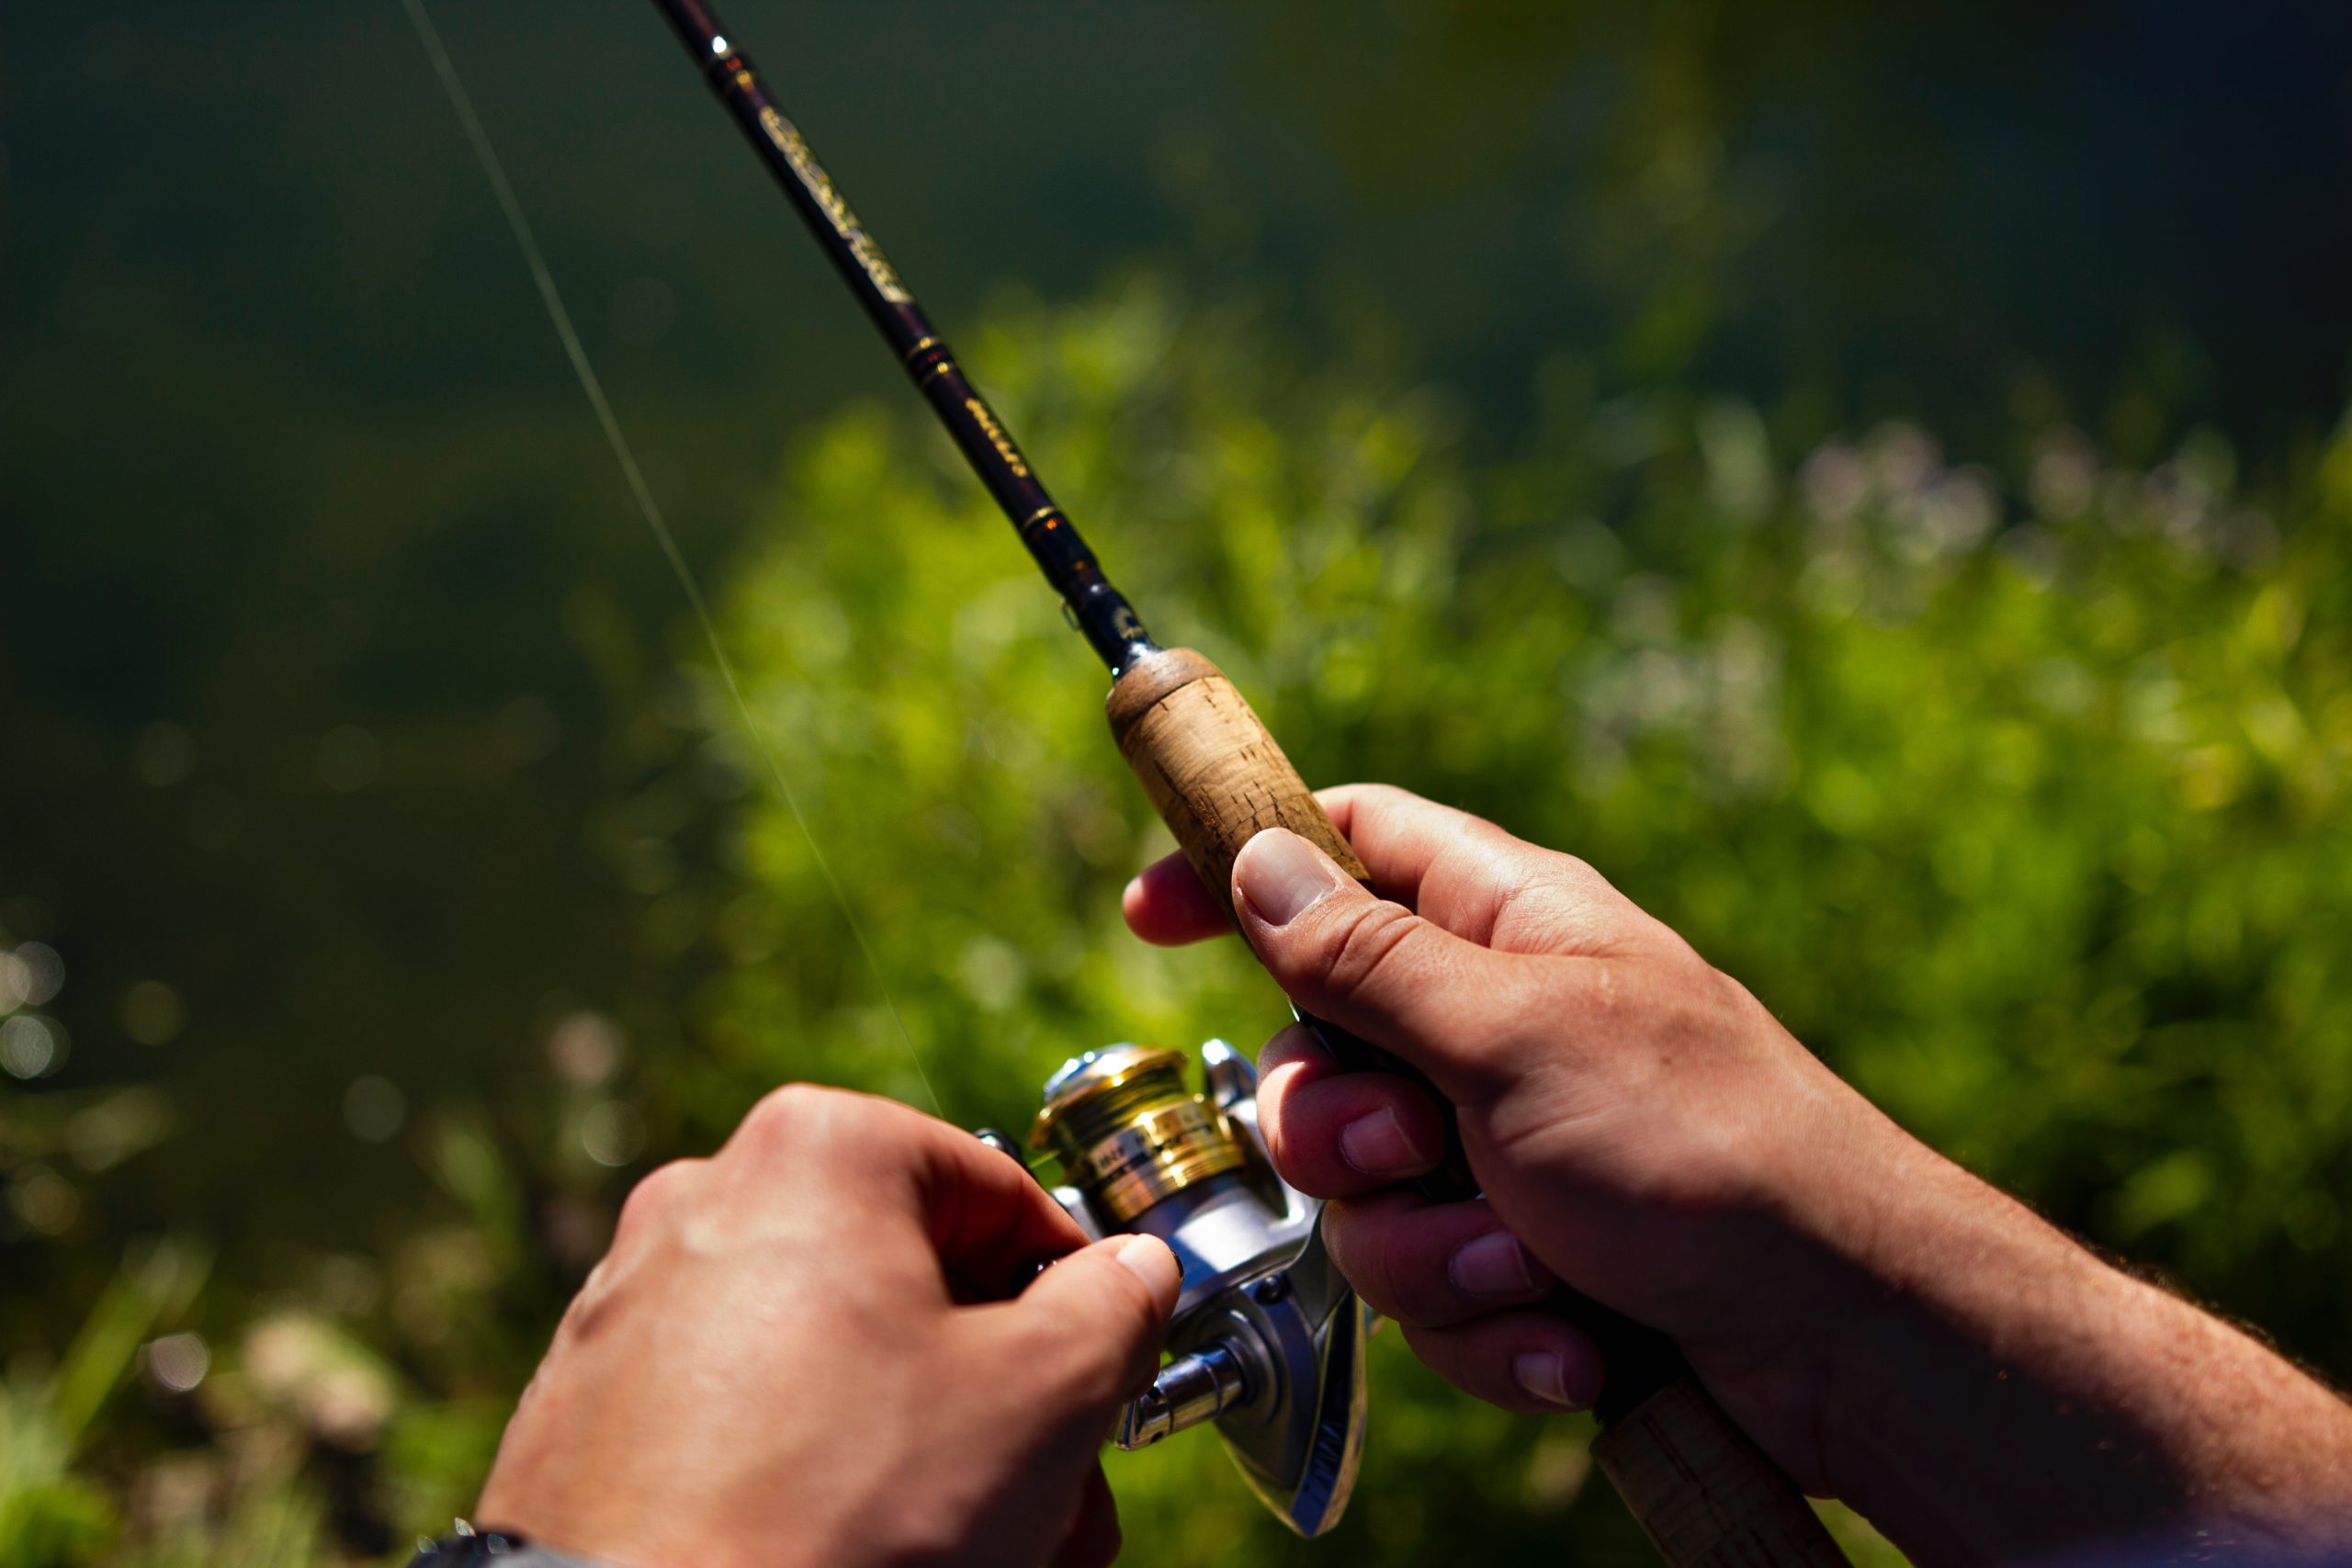 create engaging hooks then reel them in